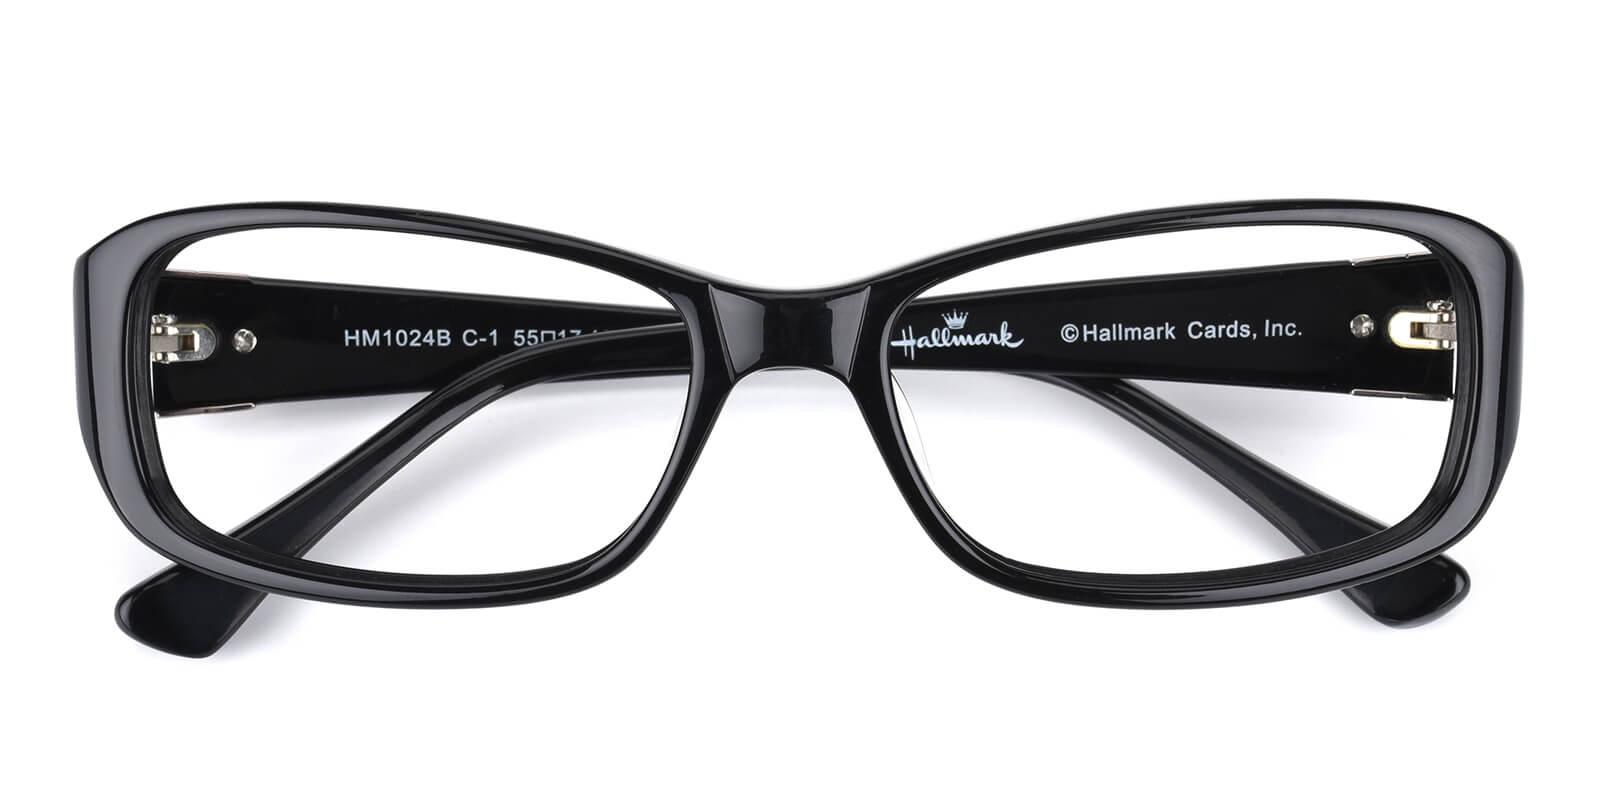 Hgytical-Black-Rectangle-Acetate-Eyeglasses-detail